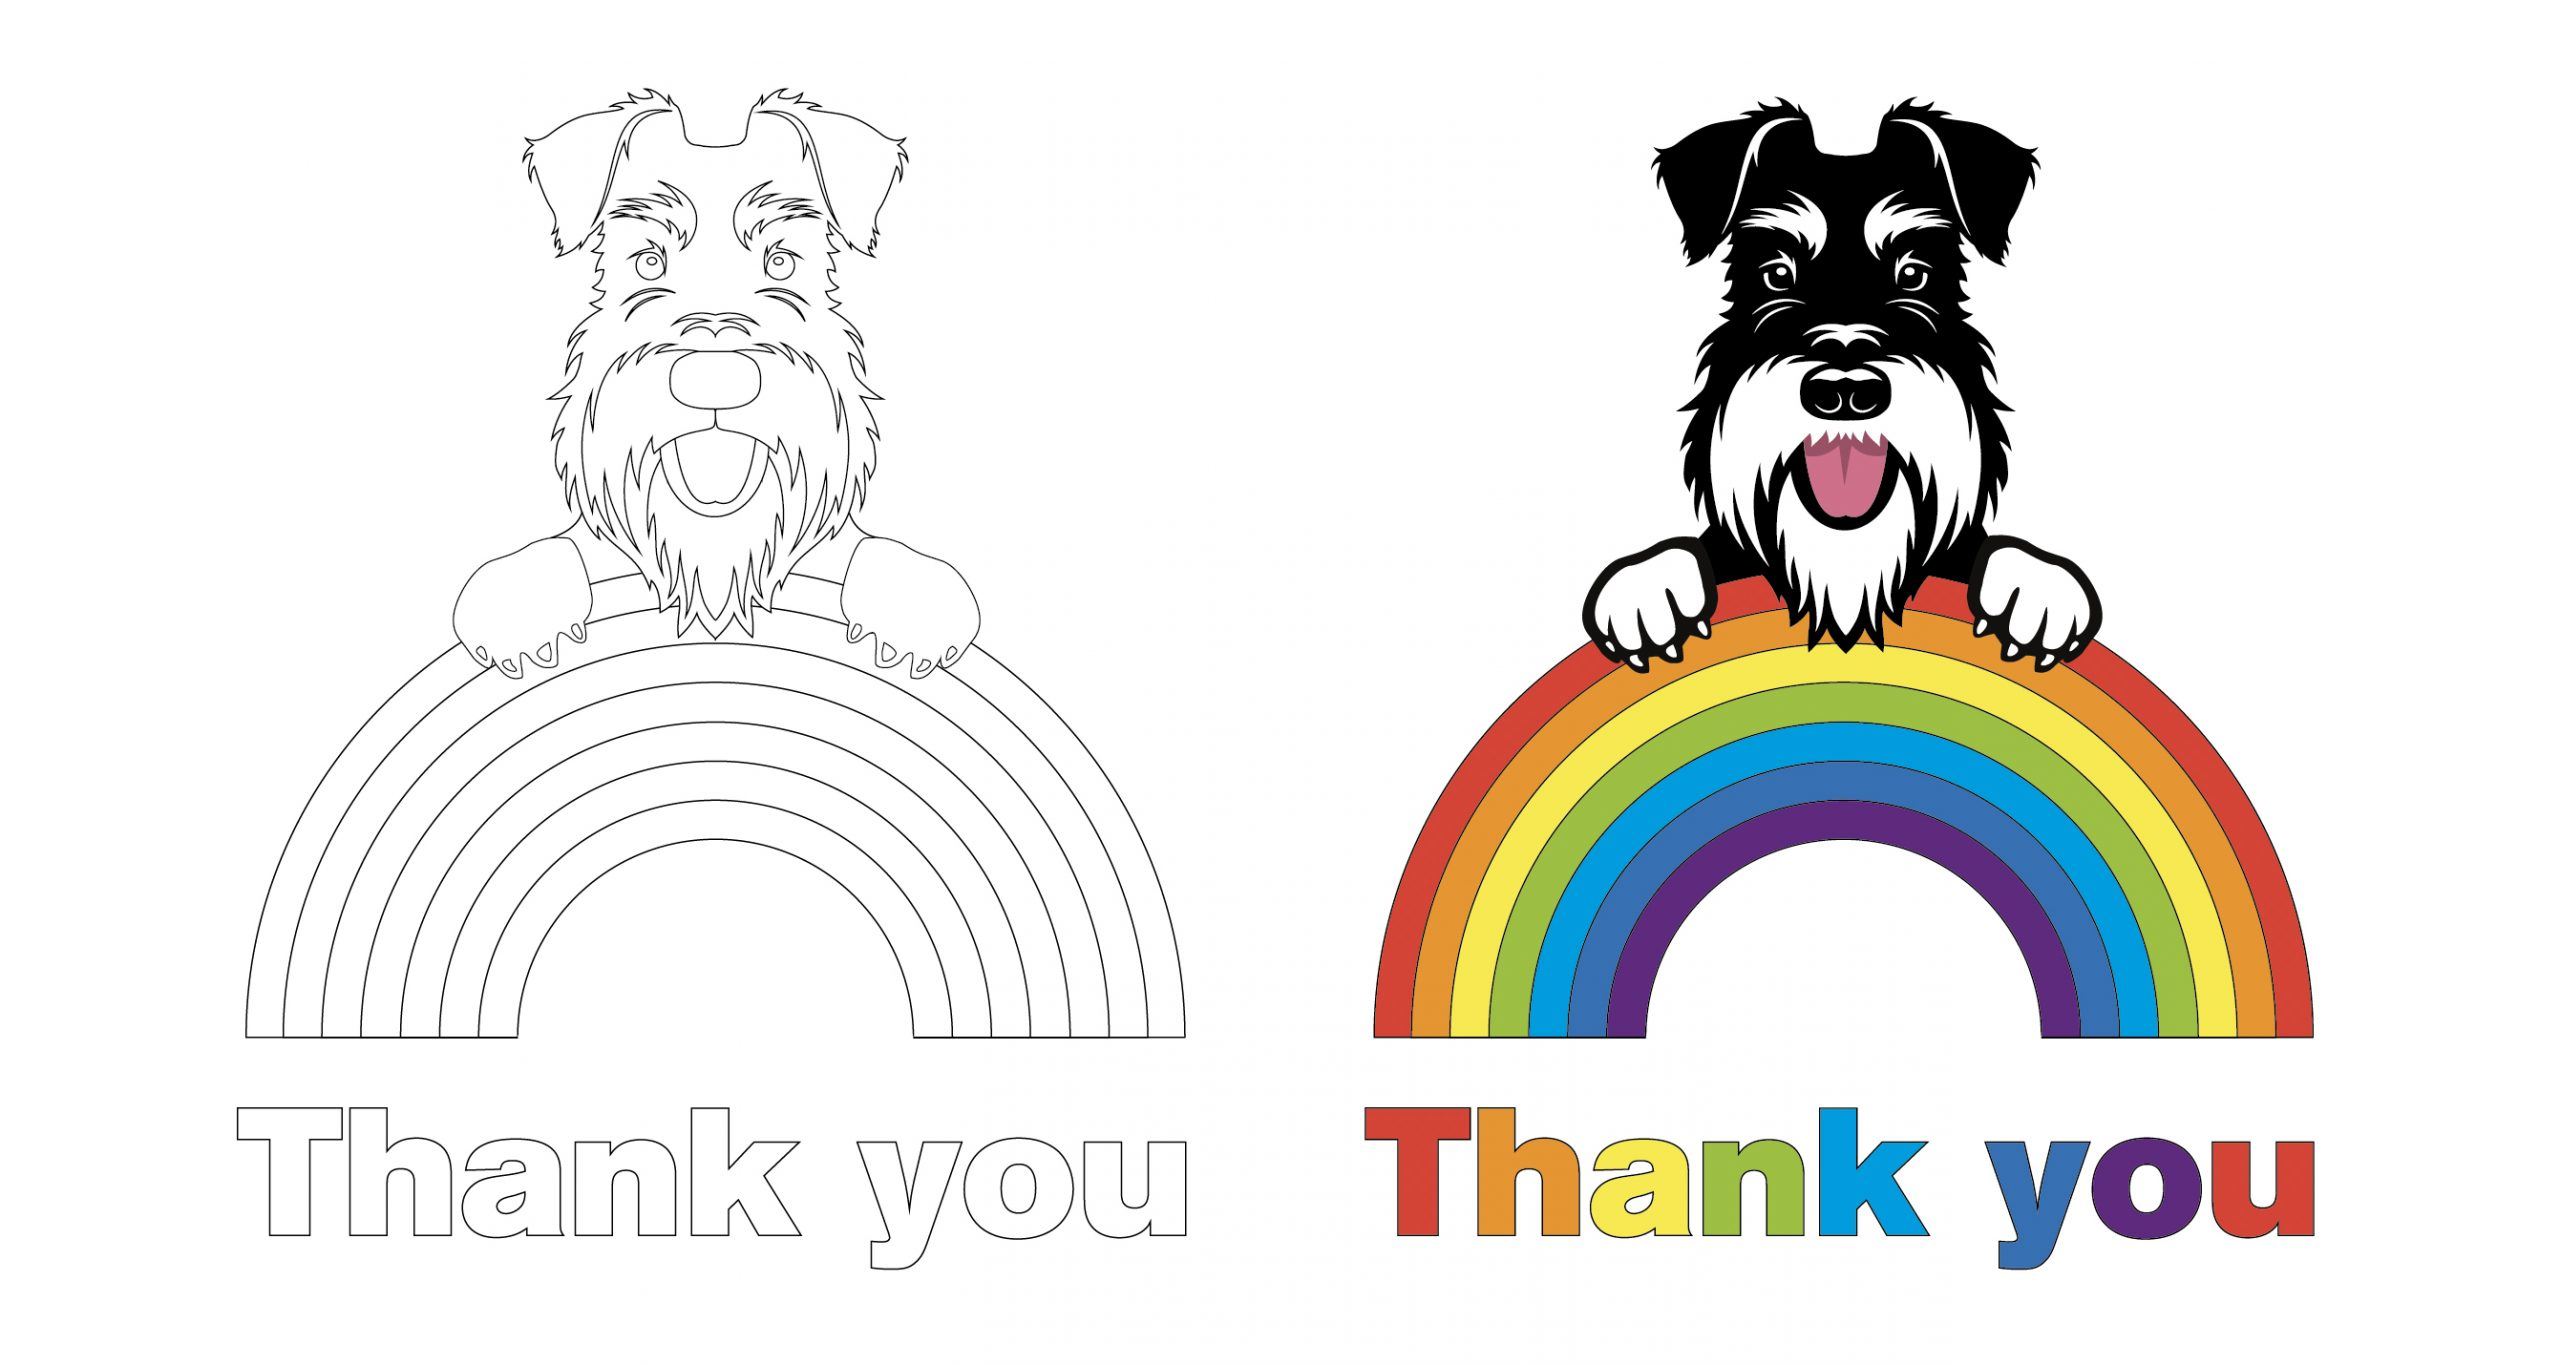 thank you rainbow colouring image